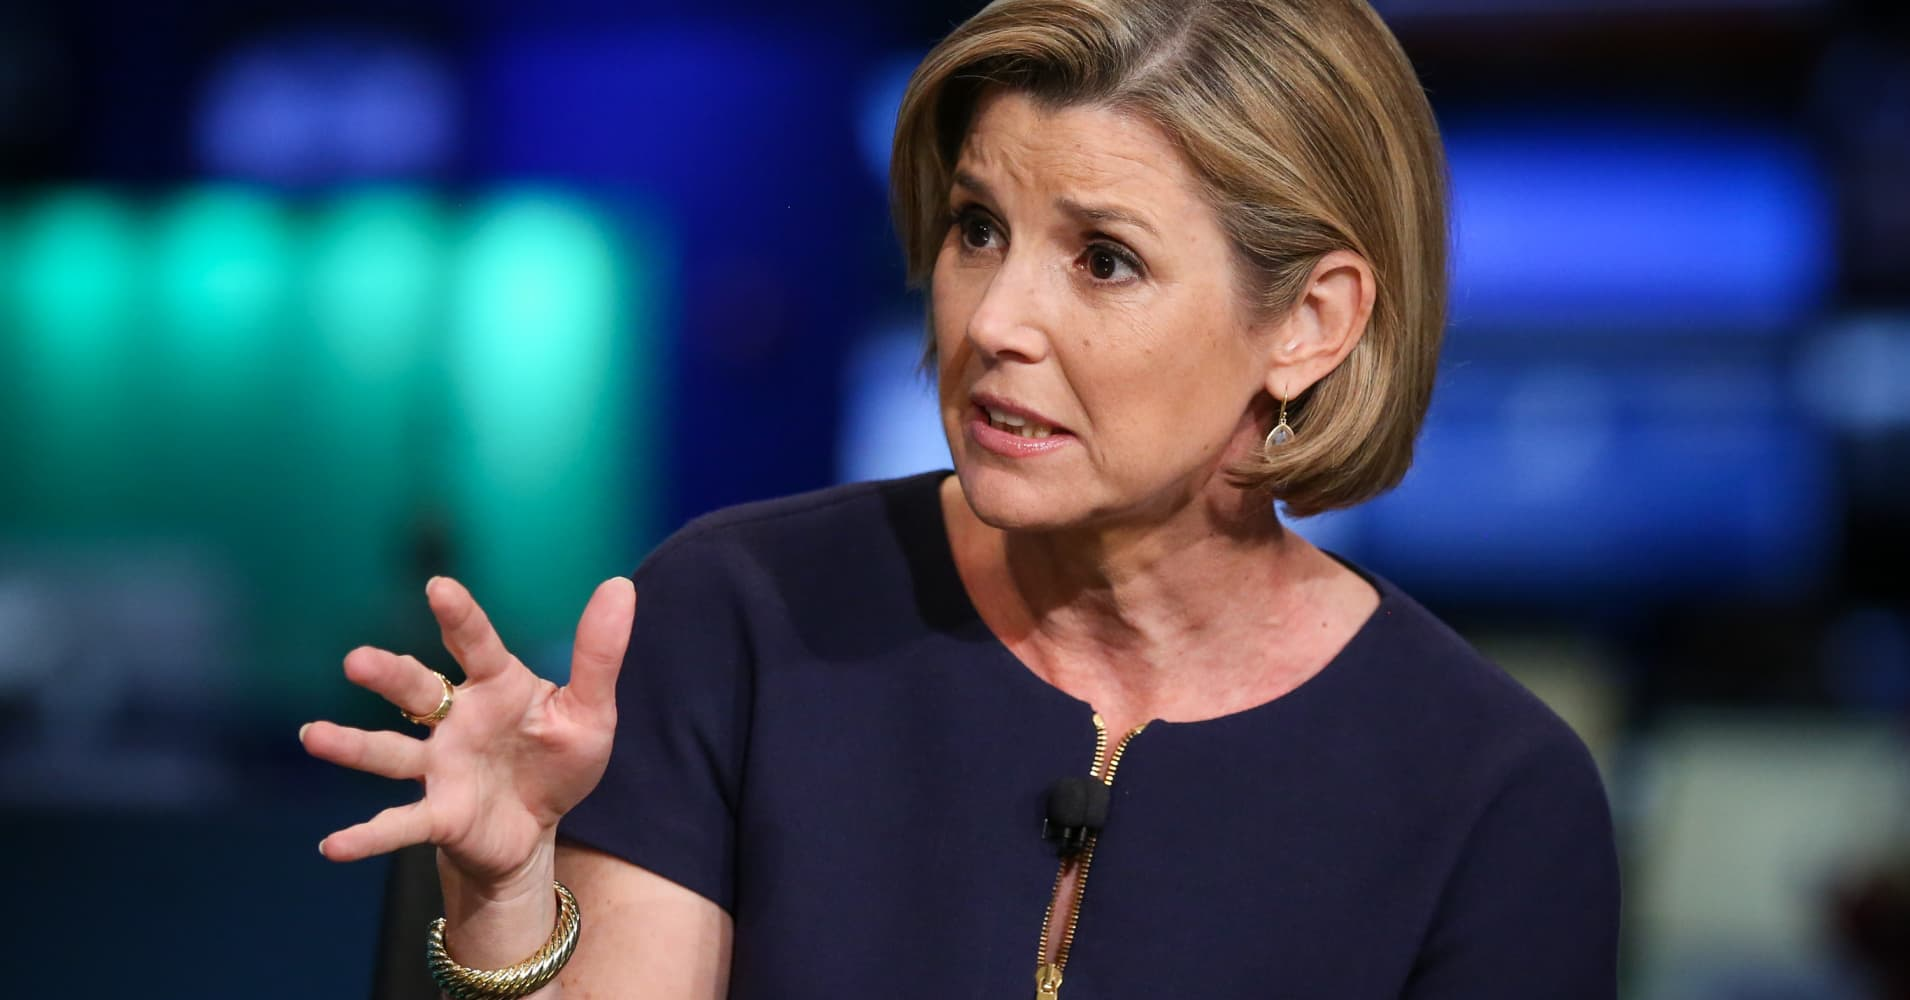 Sallie Krawcheck, CEO and Co-Founder of Ellevest